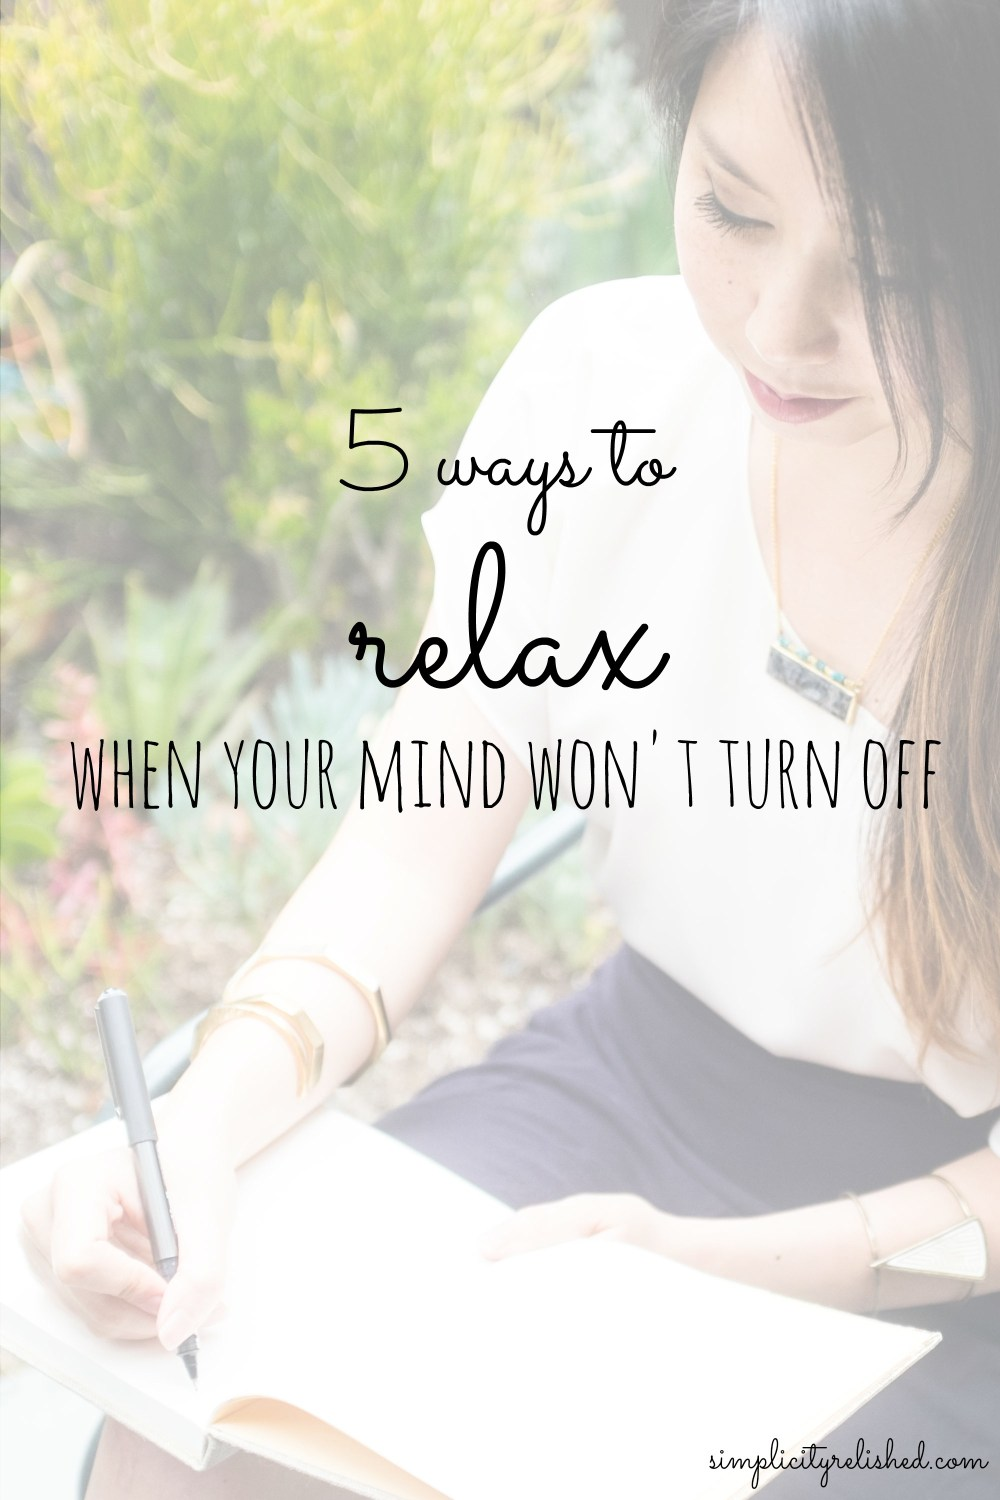 5 ways to relax when your mind won't turn off- simple practices to reduce stress easily at home